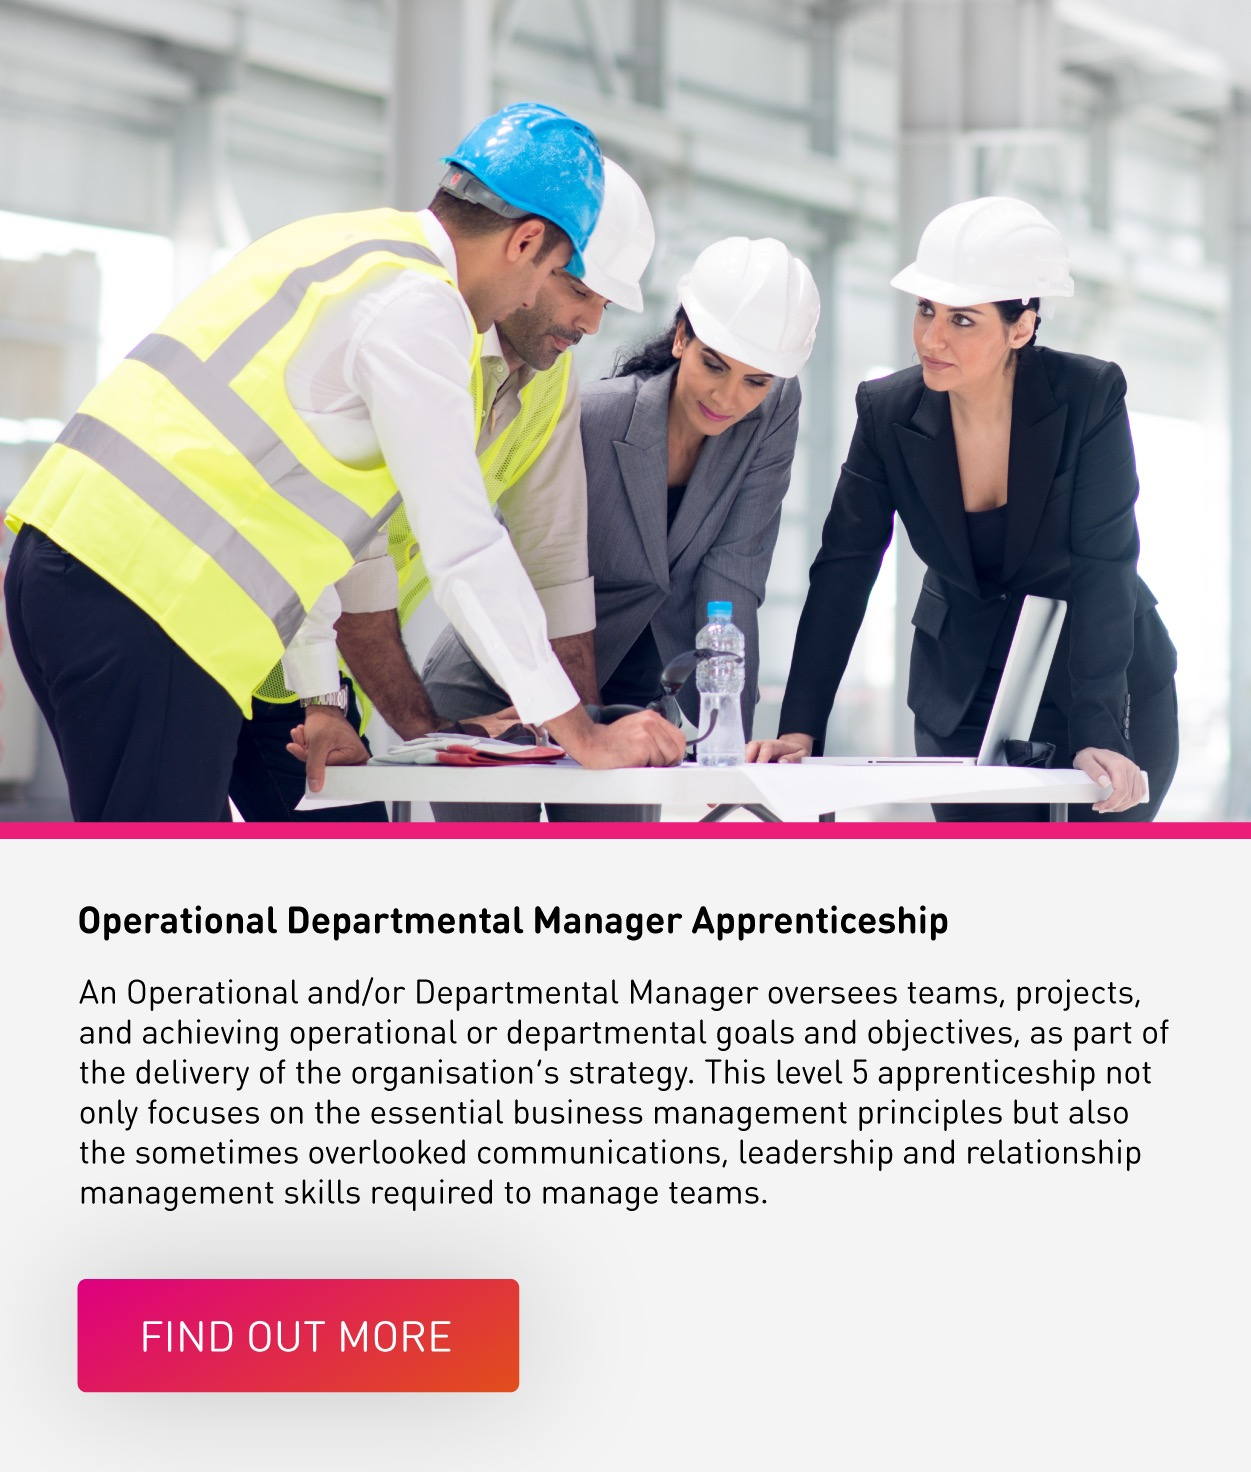 operational/departmental manager apprenticeship